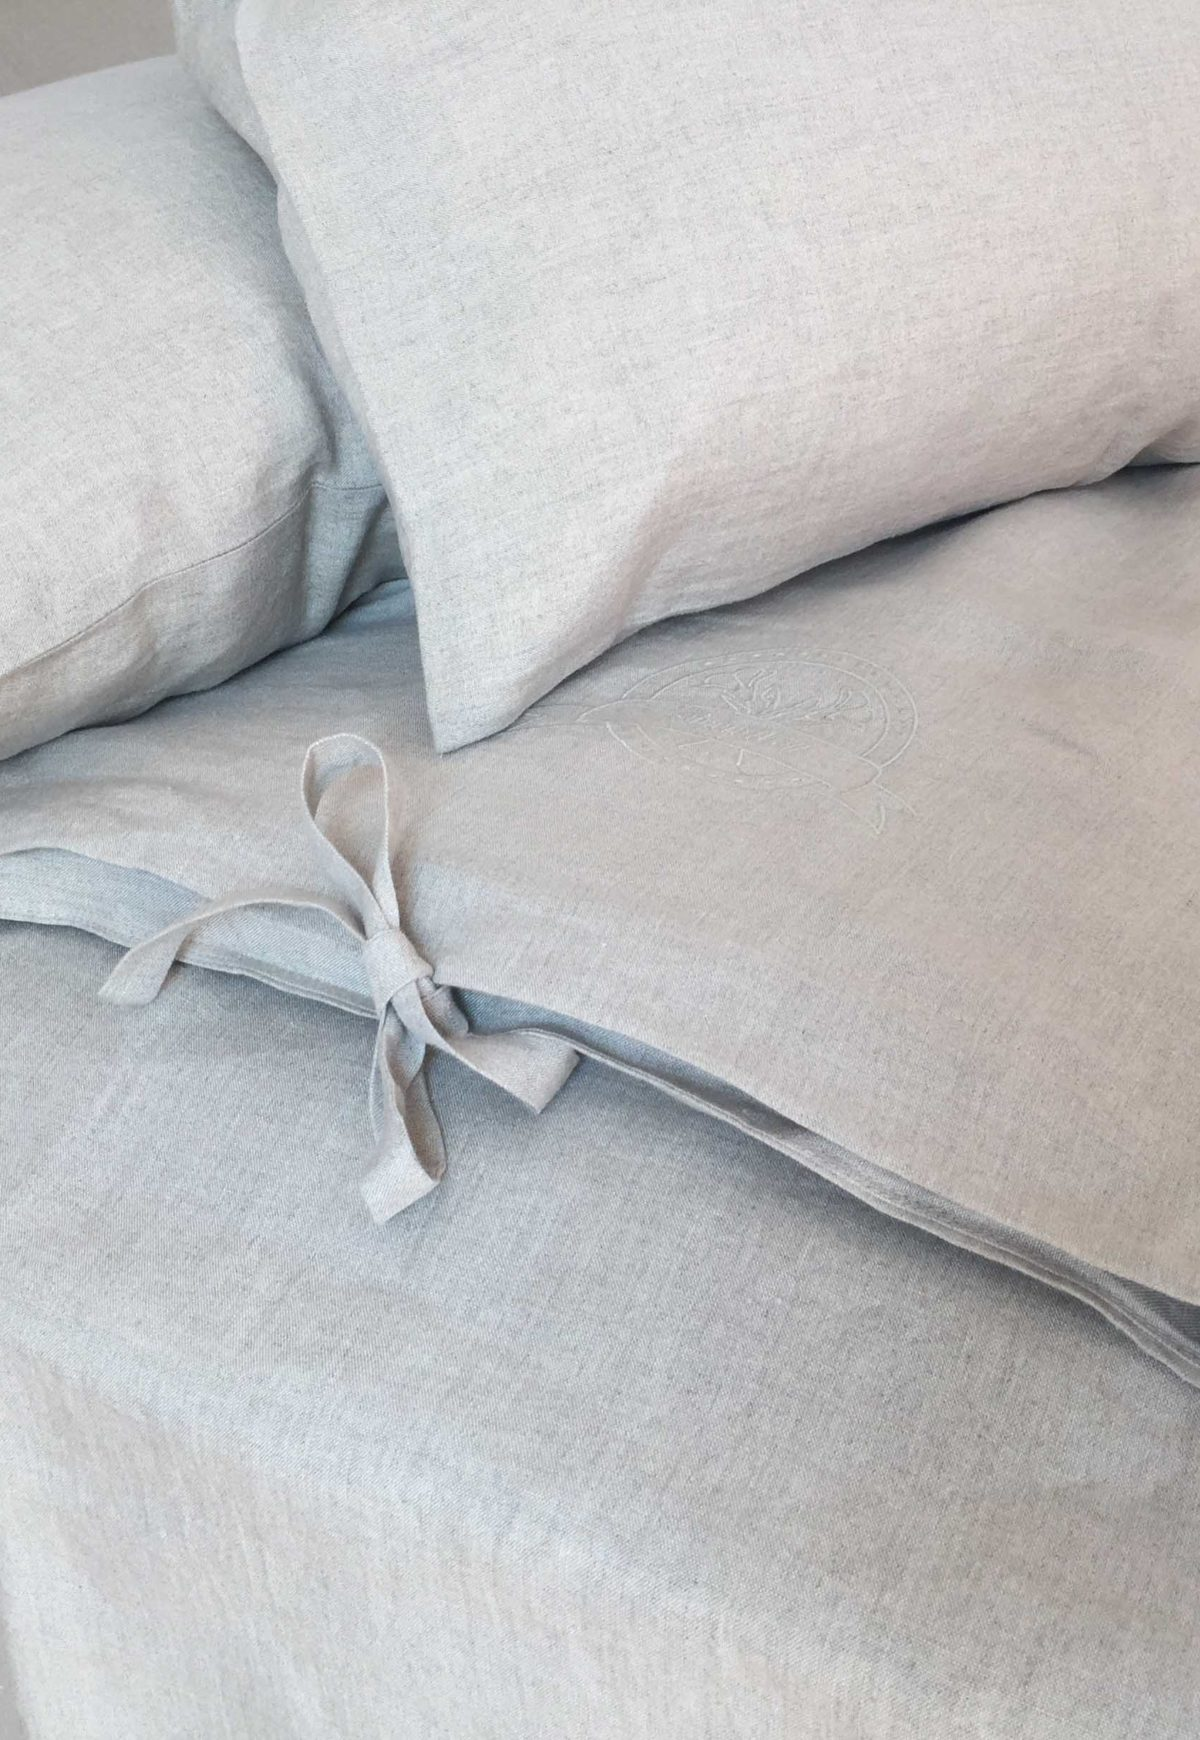 100% linen bedding + sheet set 200x200cm